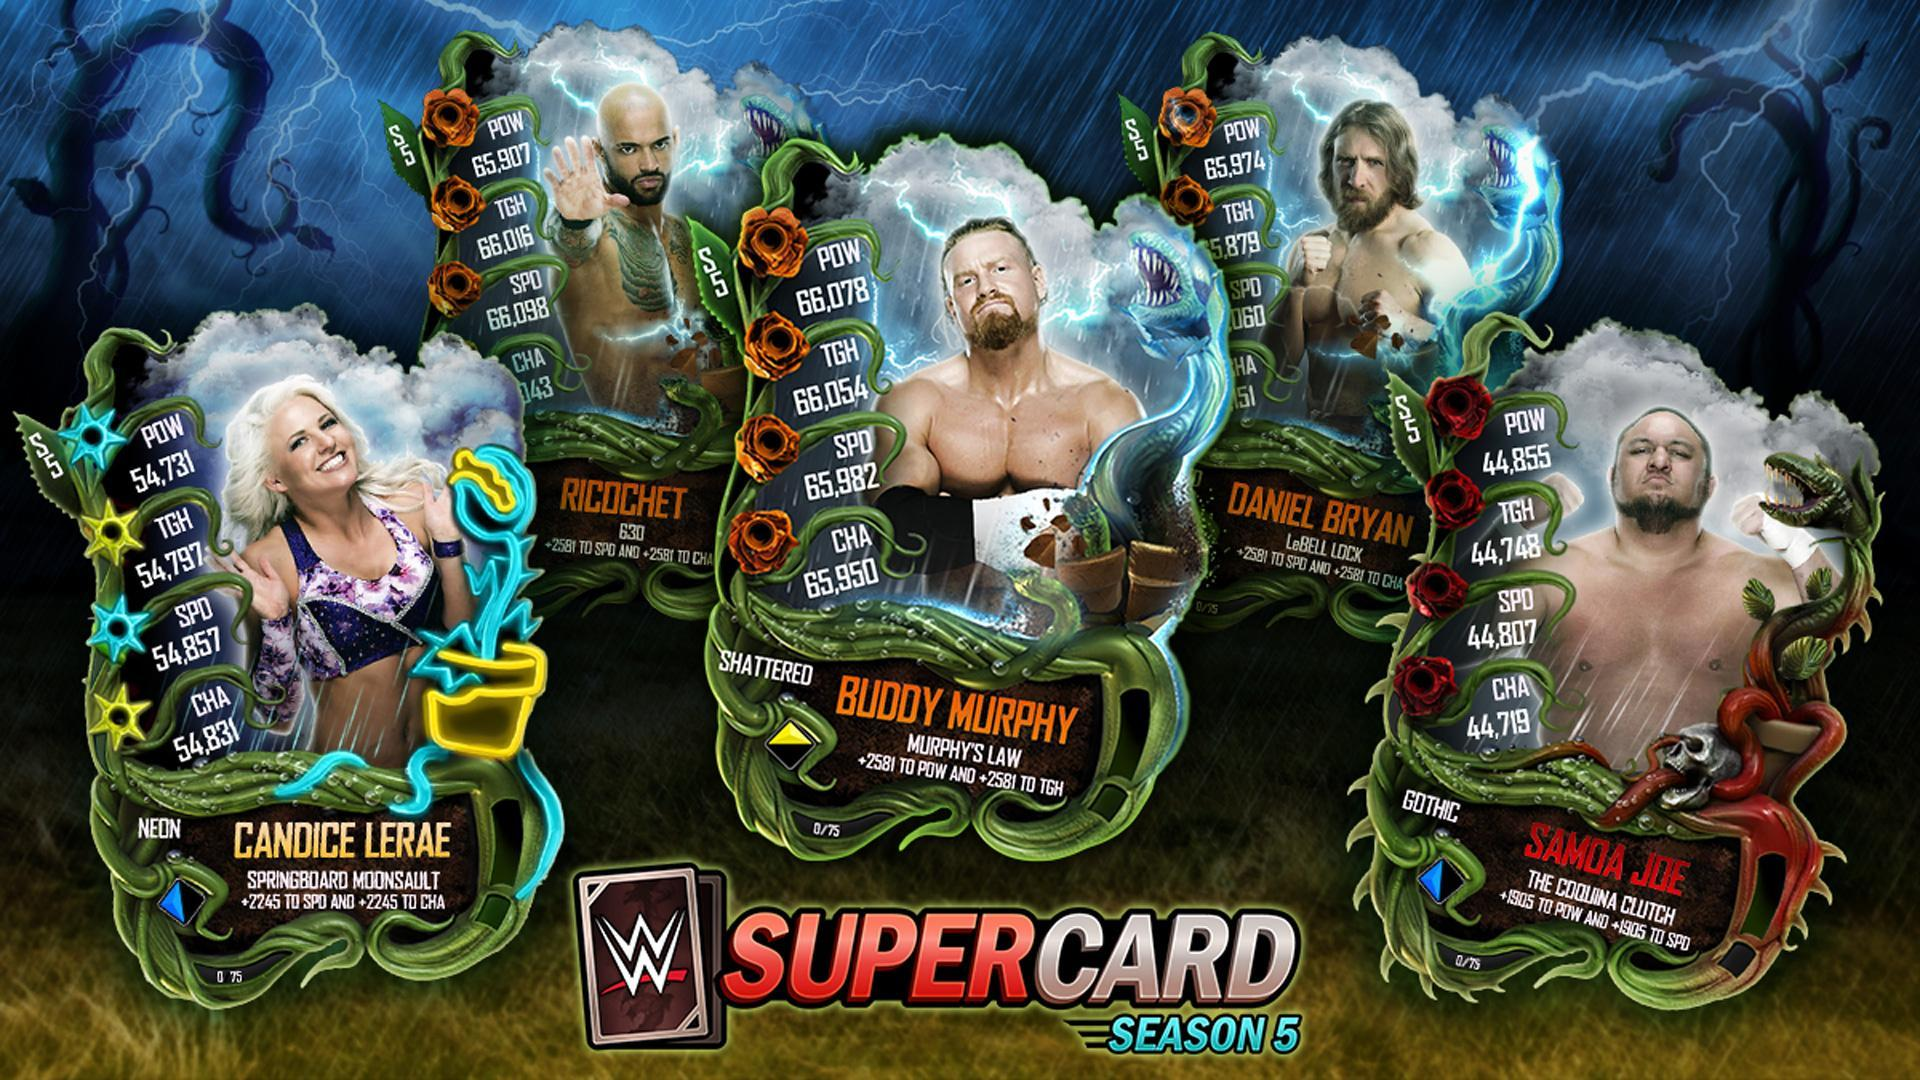 WWE SuperCard Spring 2019 Promotion, featuring 18 New Cards!